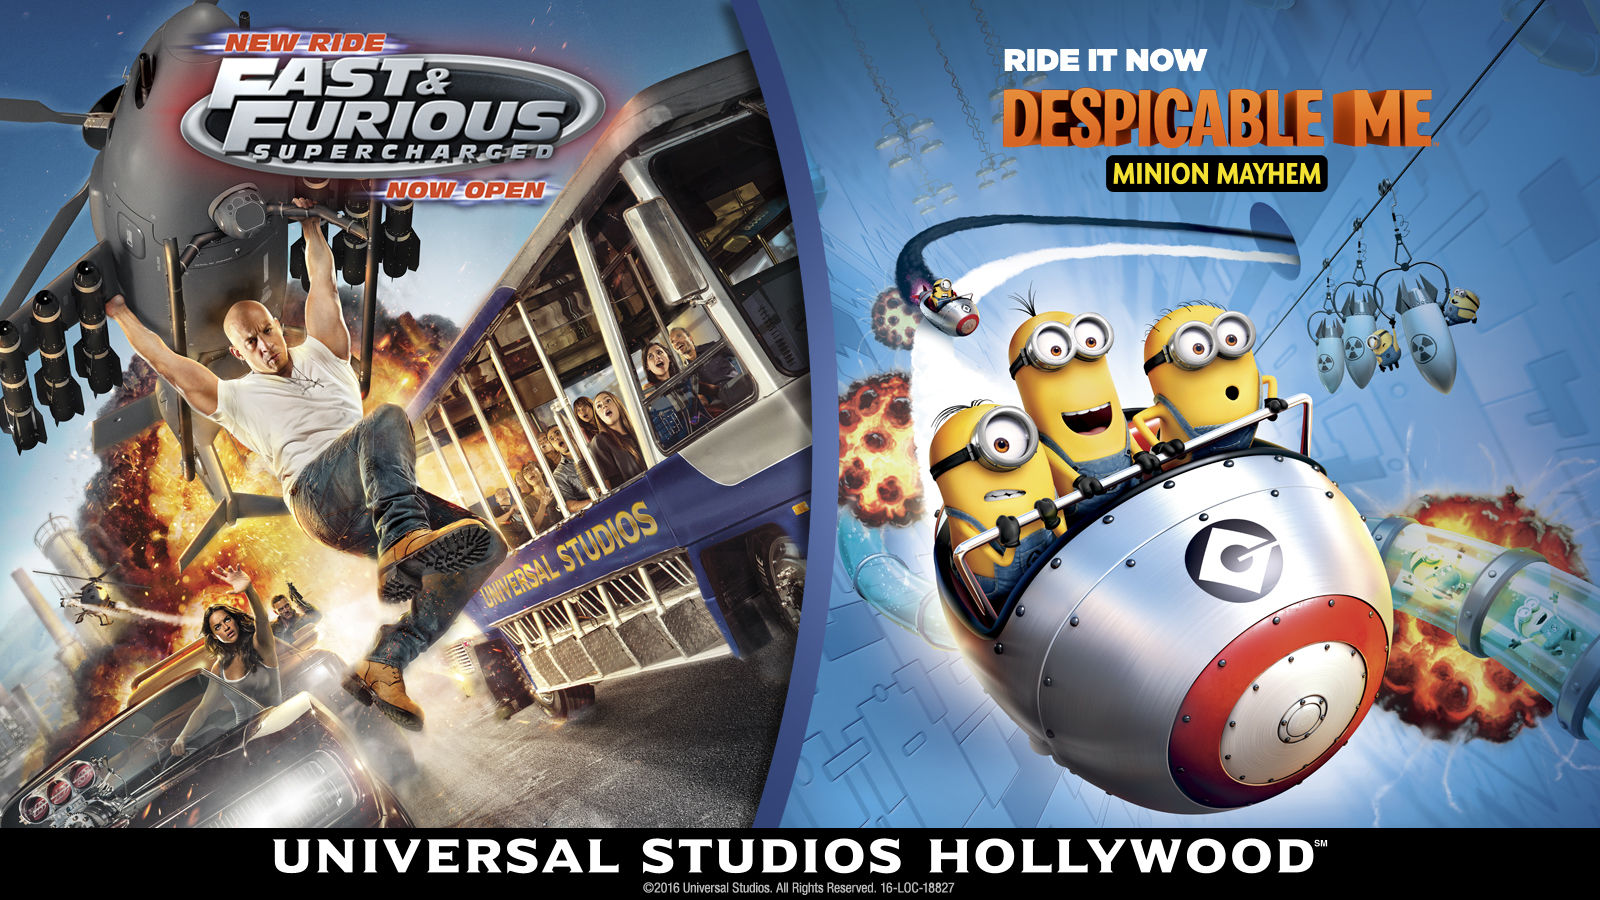 Universal Studios Hollywood Hotels - Universal Studios Hollywood